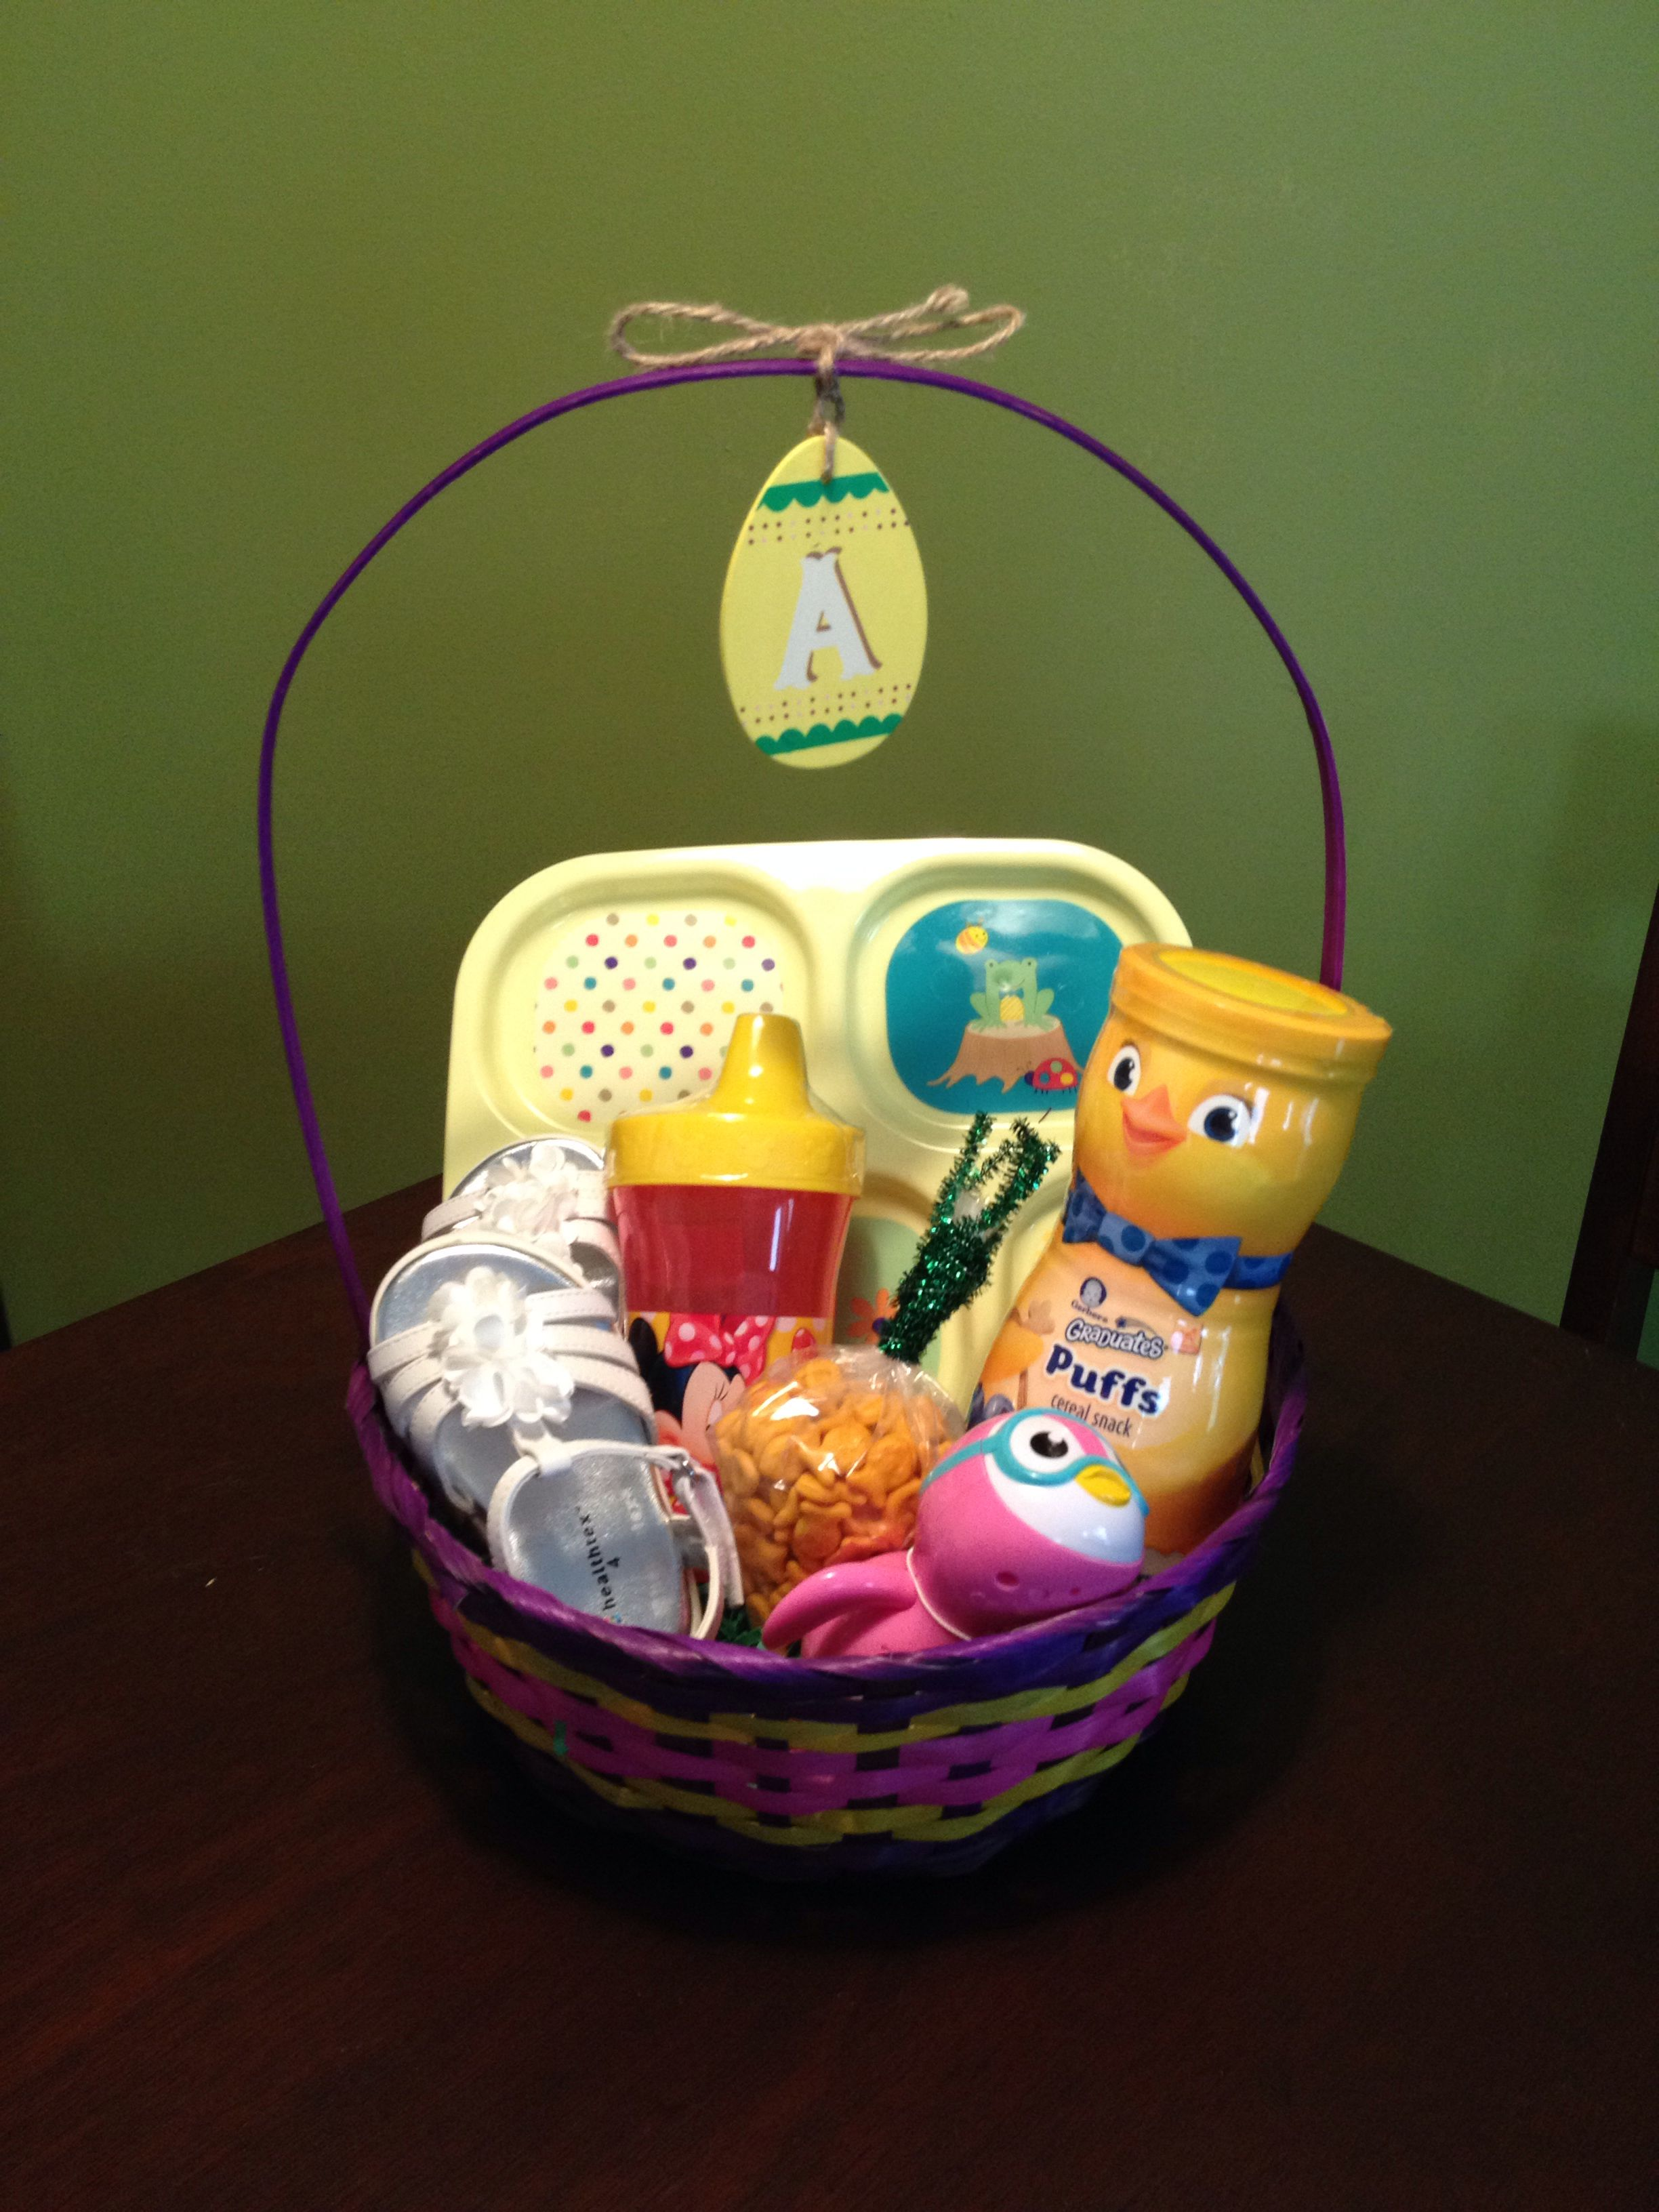 Easter Basket For A One Year Old Toddler Plate Sippy Cup Bath Toy Sandals Puffs And Goldfish Carrot